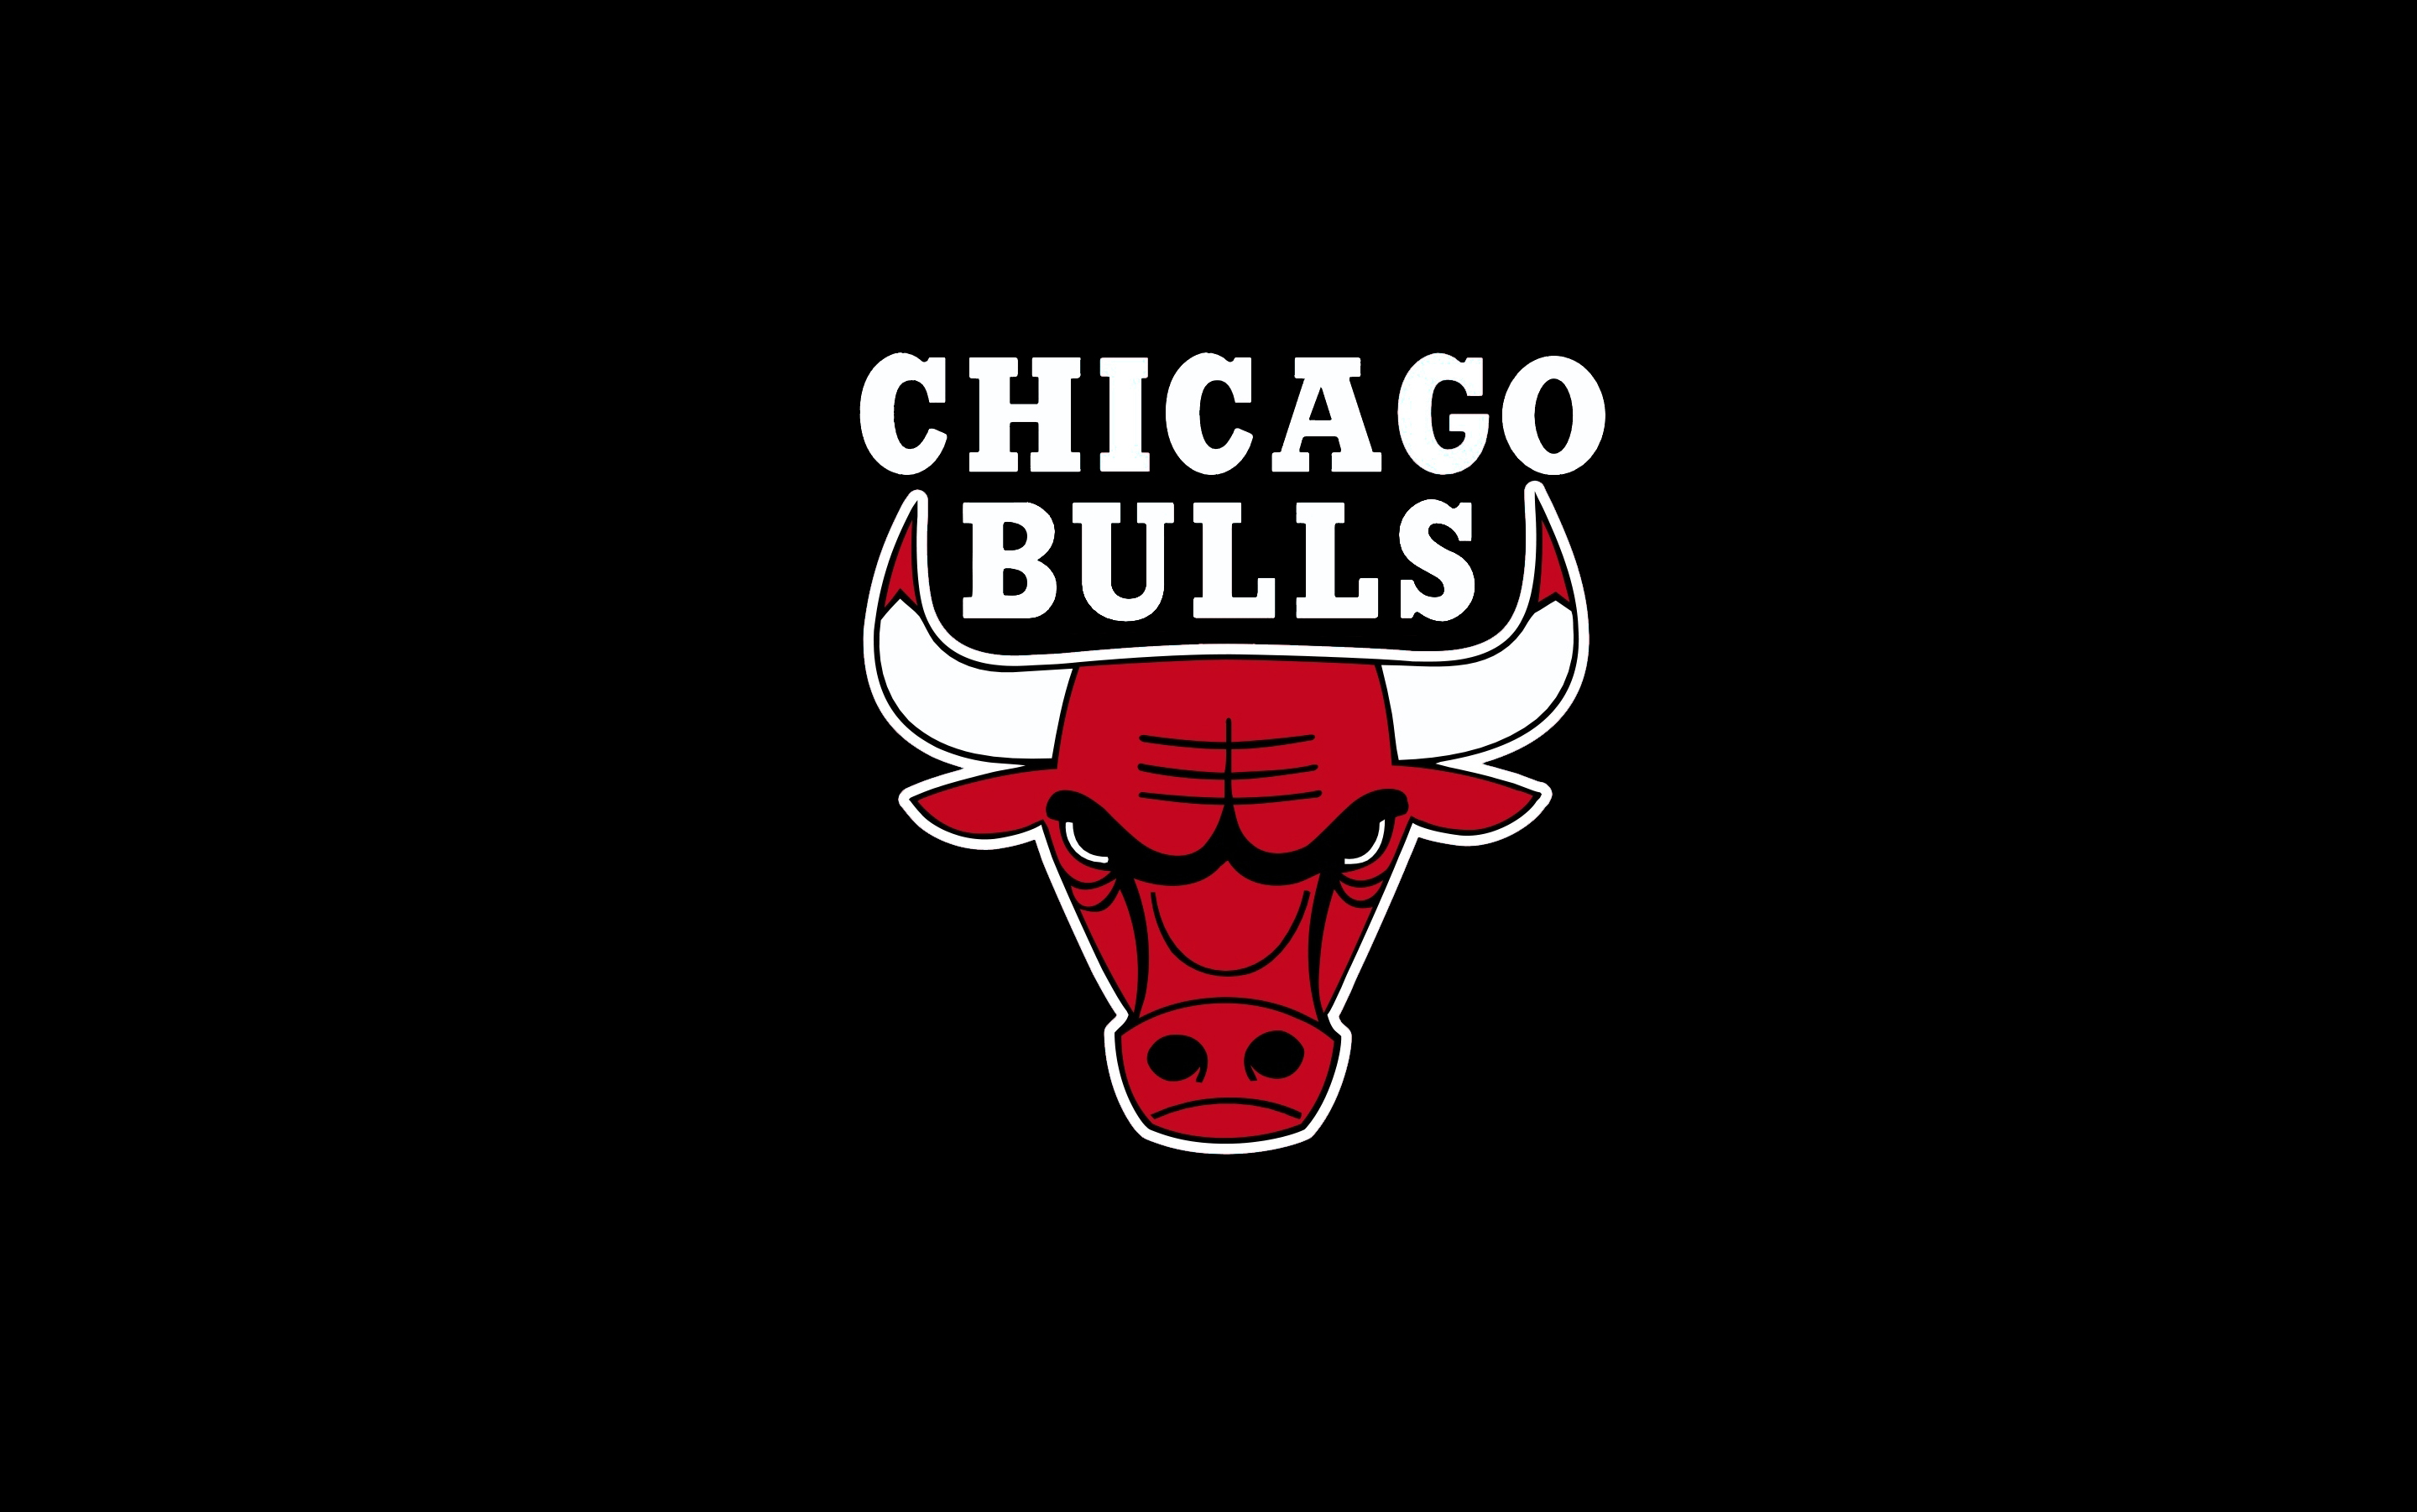 Chicago Bulls Black - Chicago Bulls Black